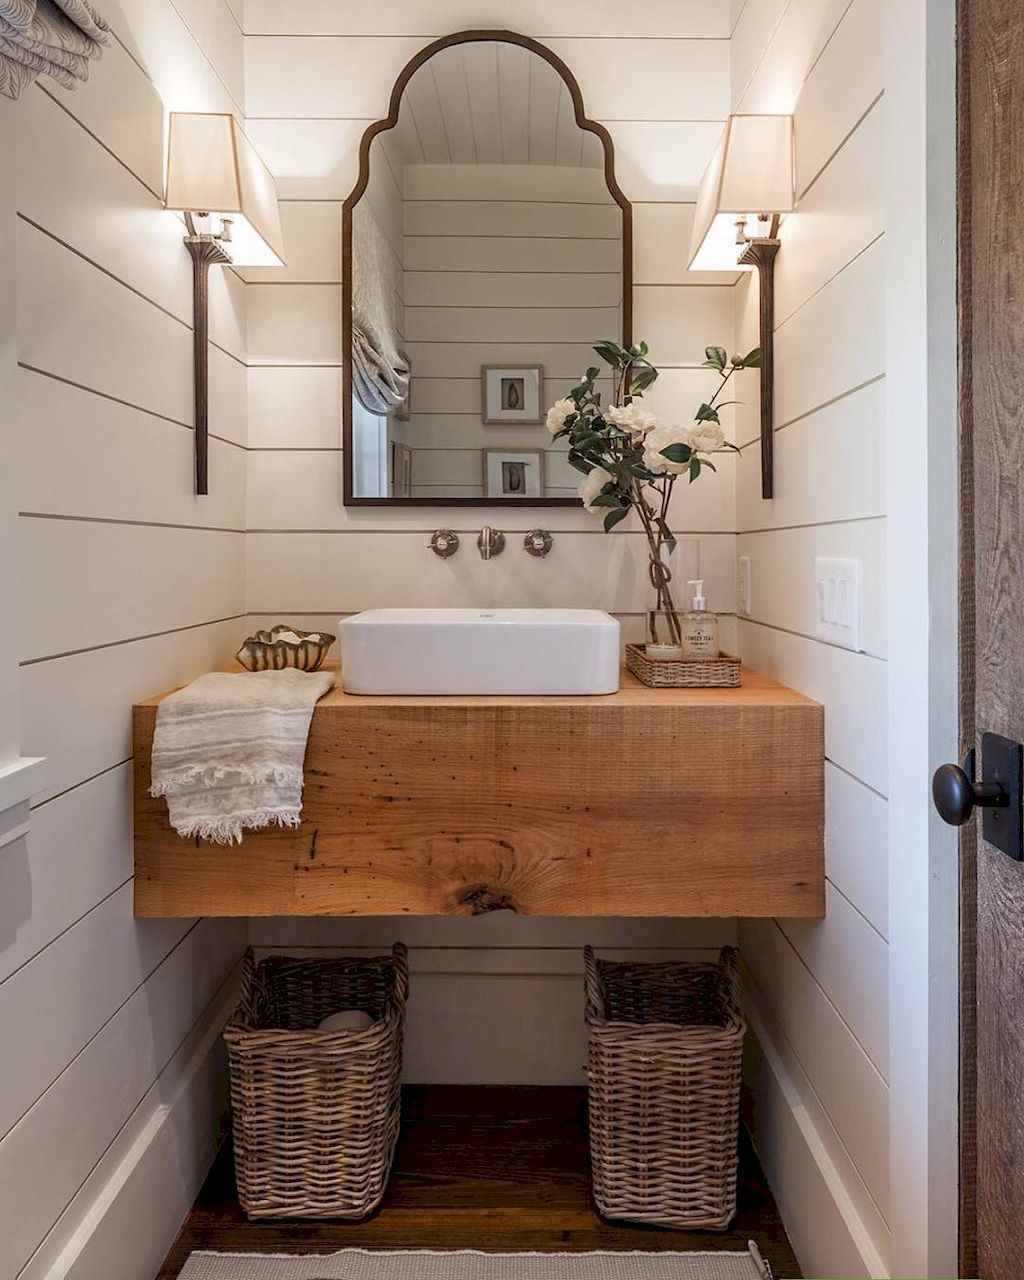 50 rustic farmhouse master bathroom remodel ideas 11 for Rustic farmhouse bathroom ideas